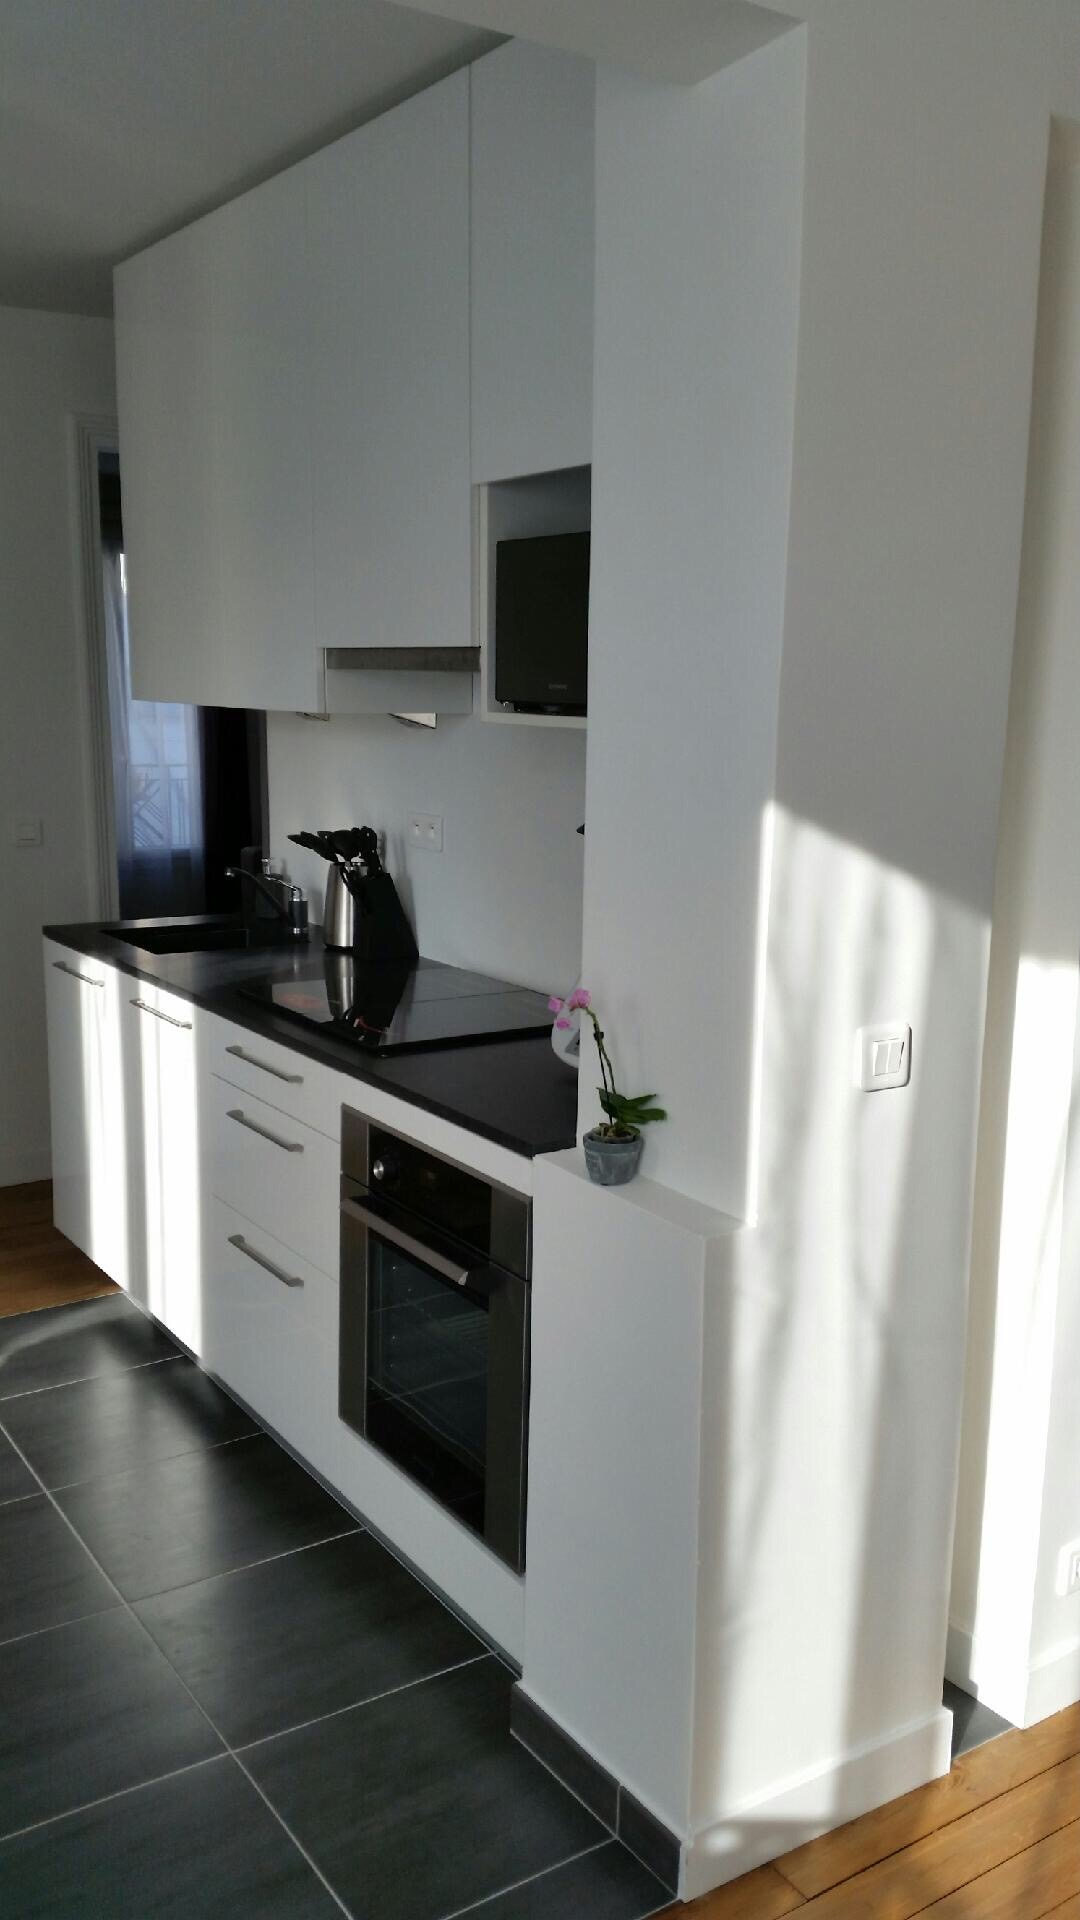 R novation d un appartement paris 17 me r novation for Cuisine ouverte sejour 40m2